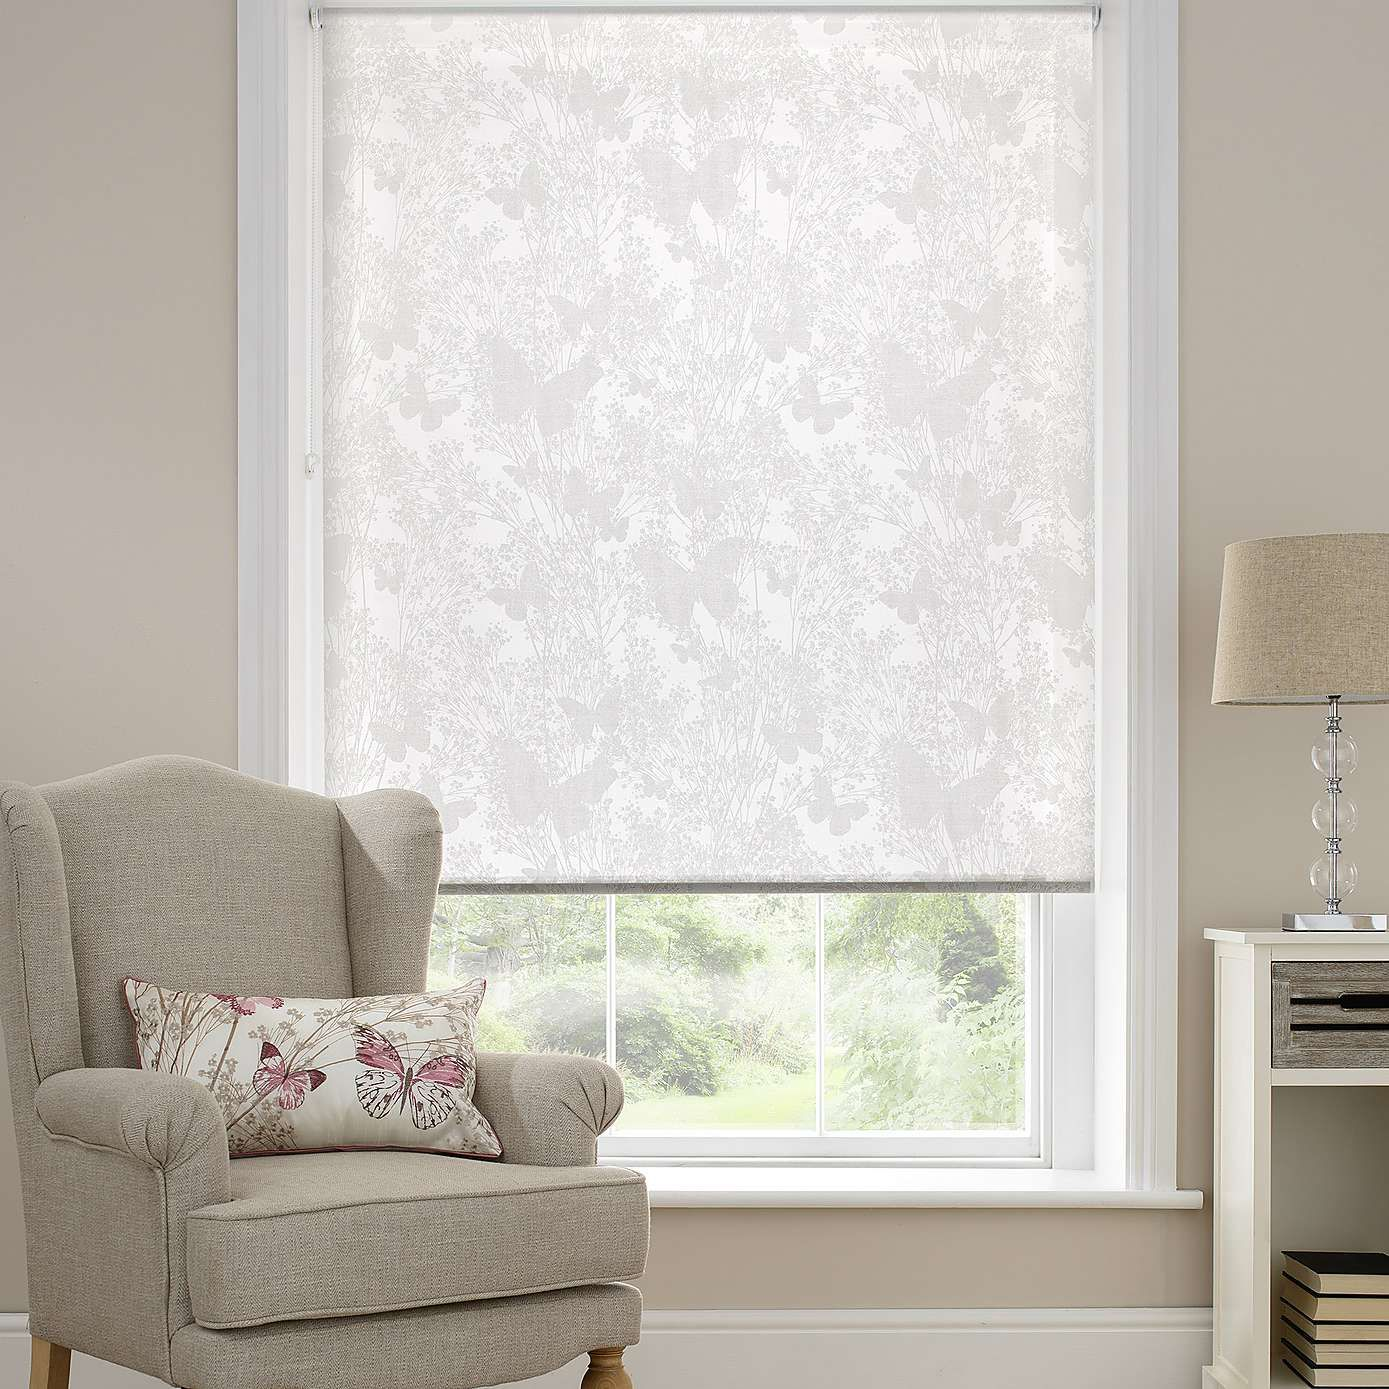 Botanical Butterfly Sheer Roller Blind Dunelm Sheer Roller Blinds Roller Blinds Home Decor